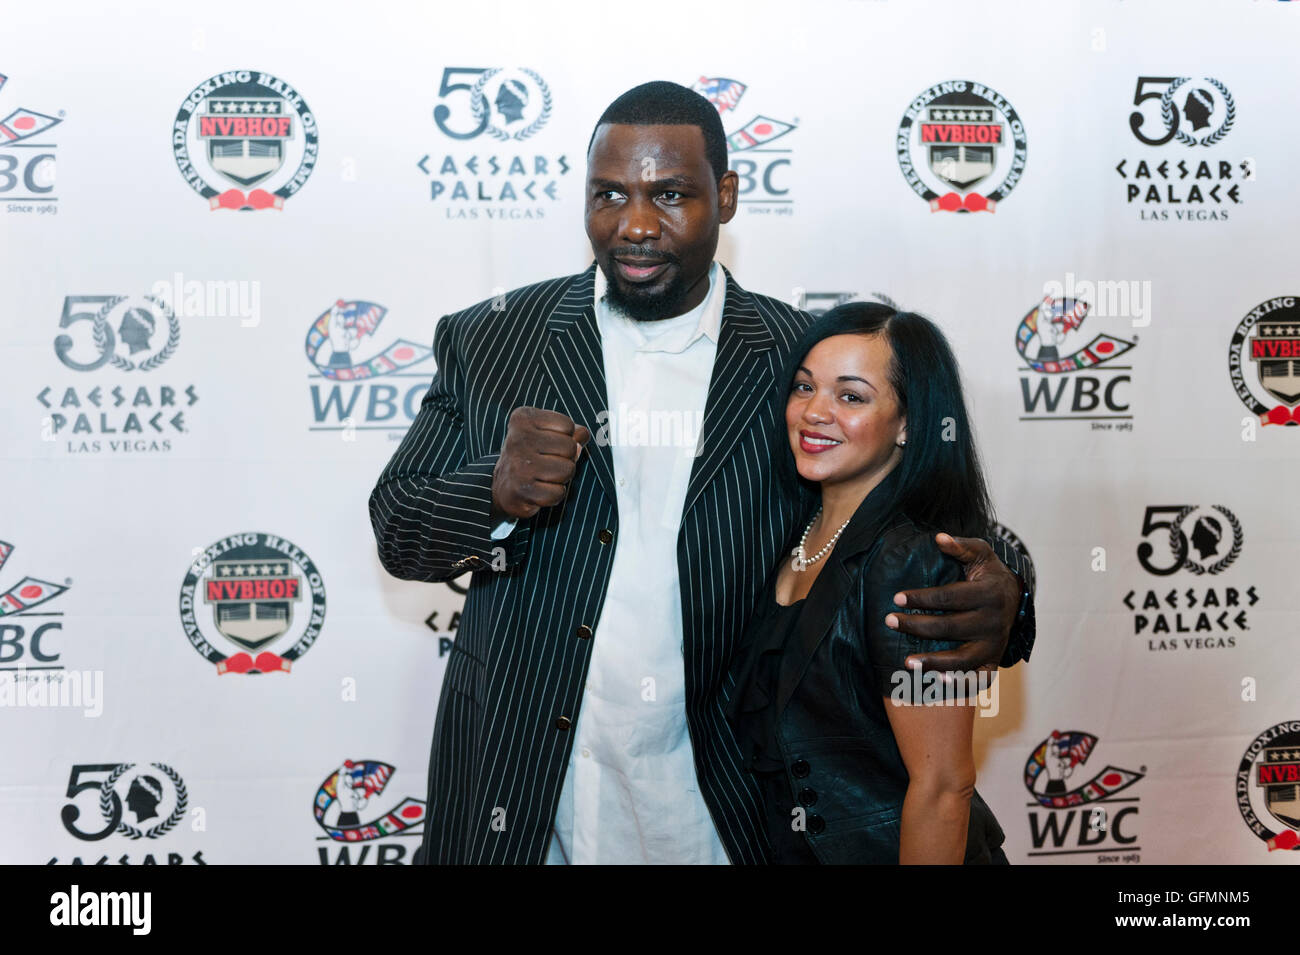 Las Vegas, Nevada, USA. 30th July, 2016. Hasim Rahman on the red carpet at the 4th Annual Nevada Boxing Hall of - Stock Image